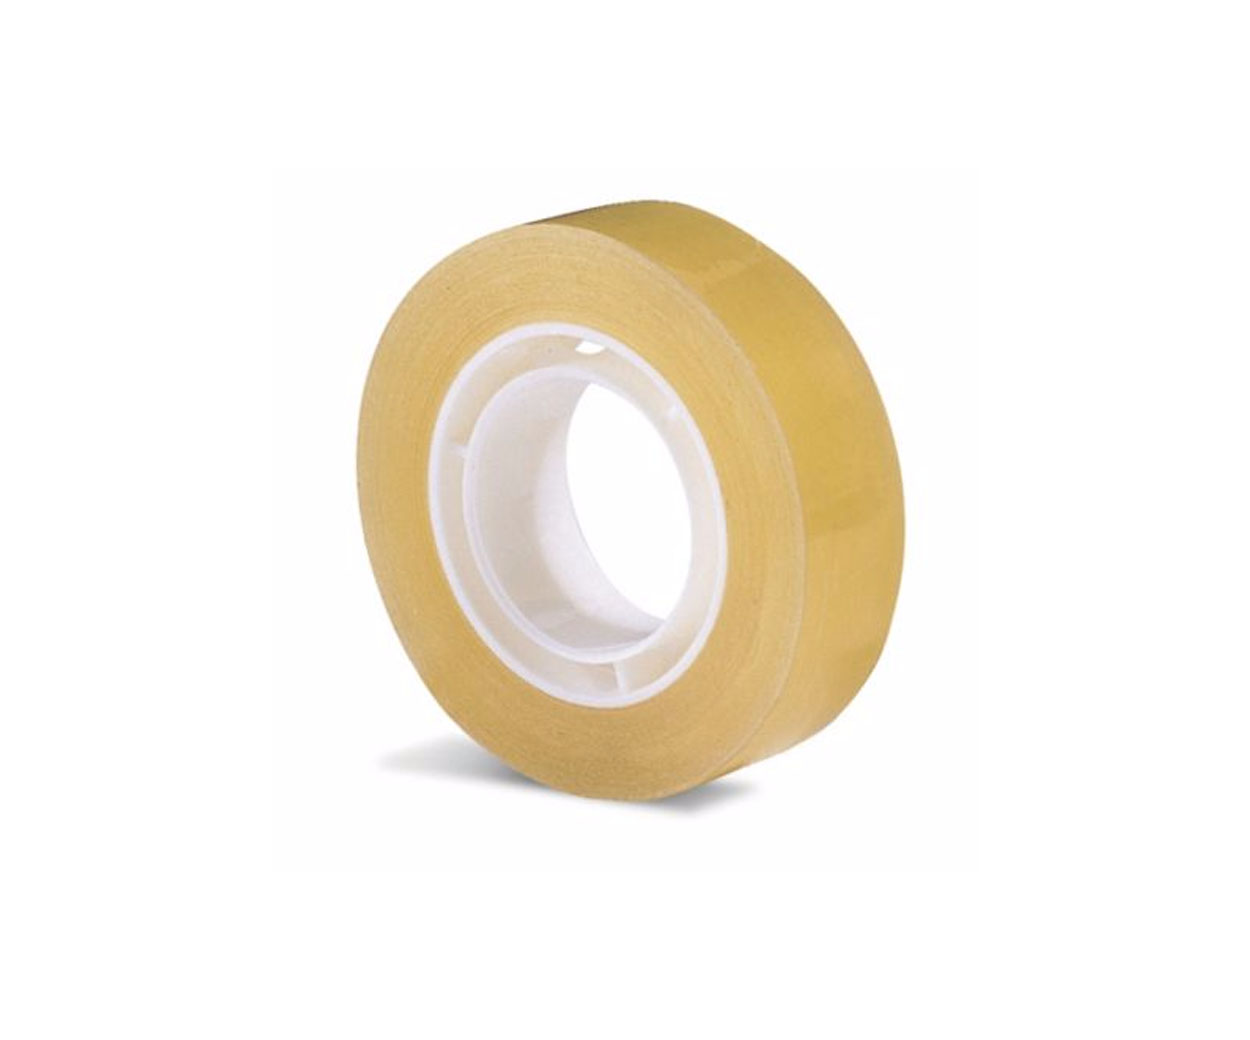 Clear tape easy tear 12mm x 33m - Pack of 12